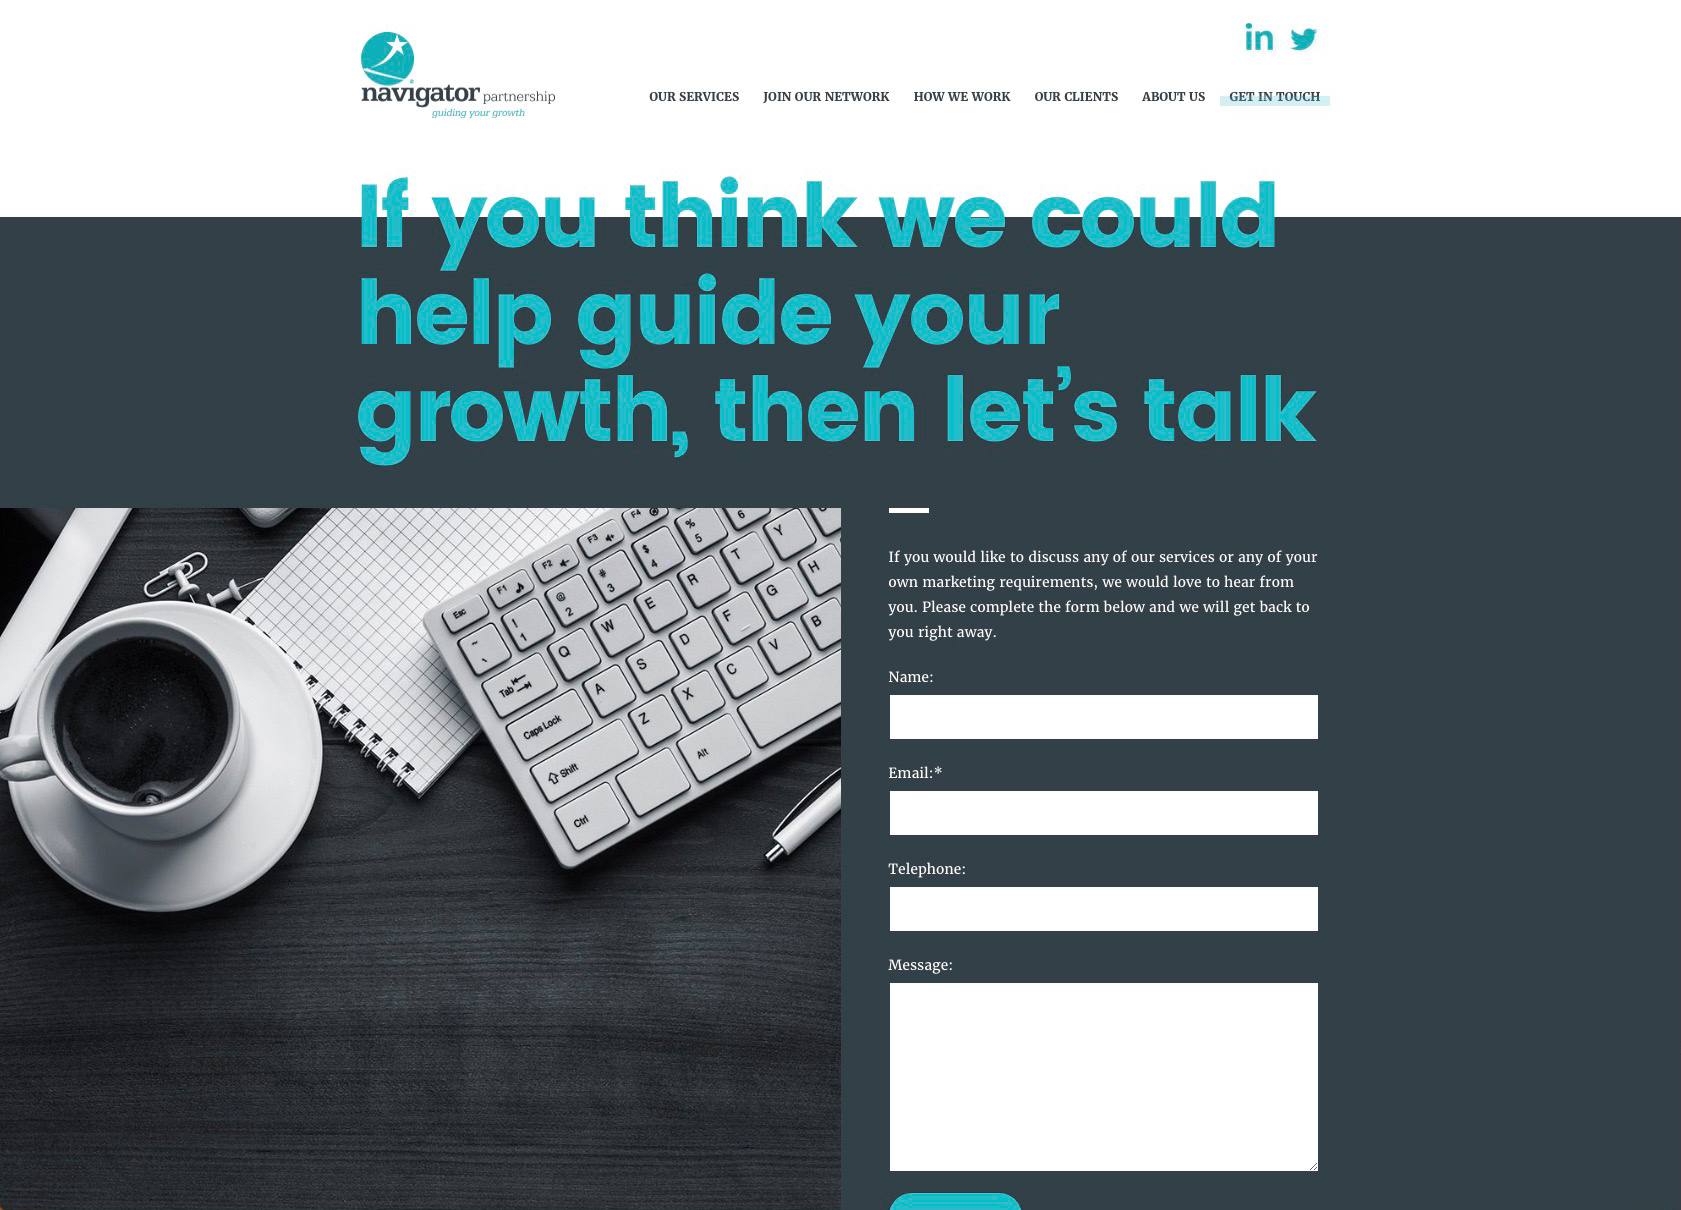 The Navigator Partnership contact page with contact form